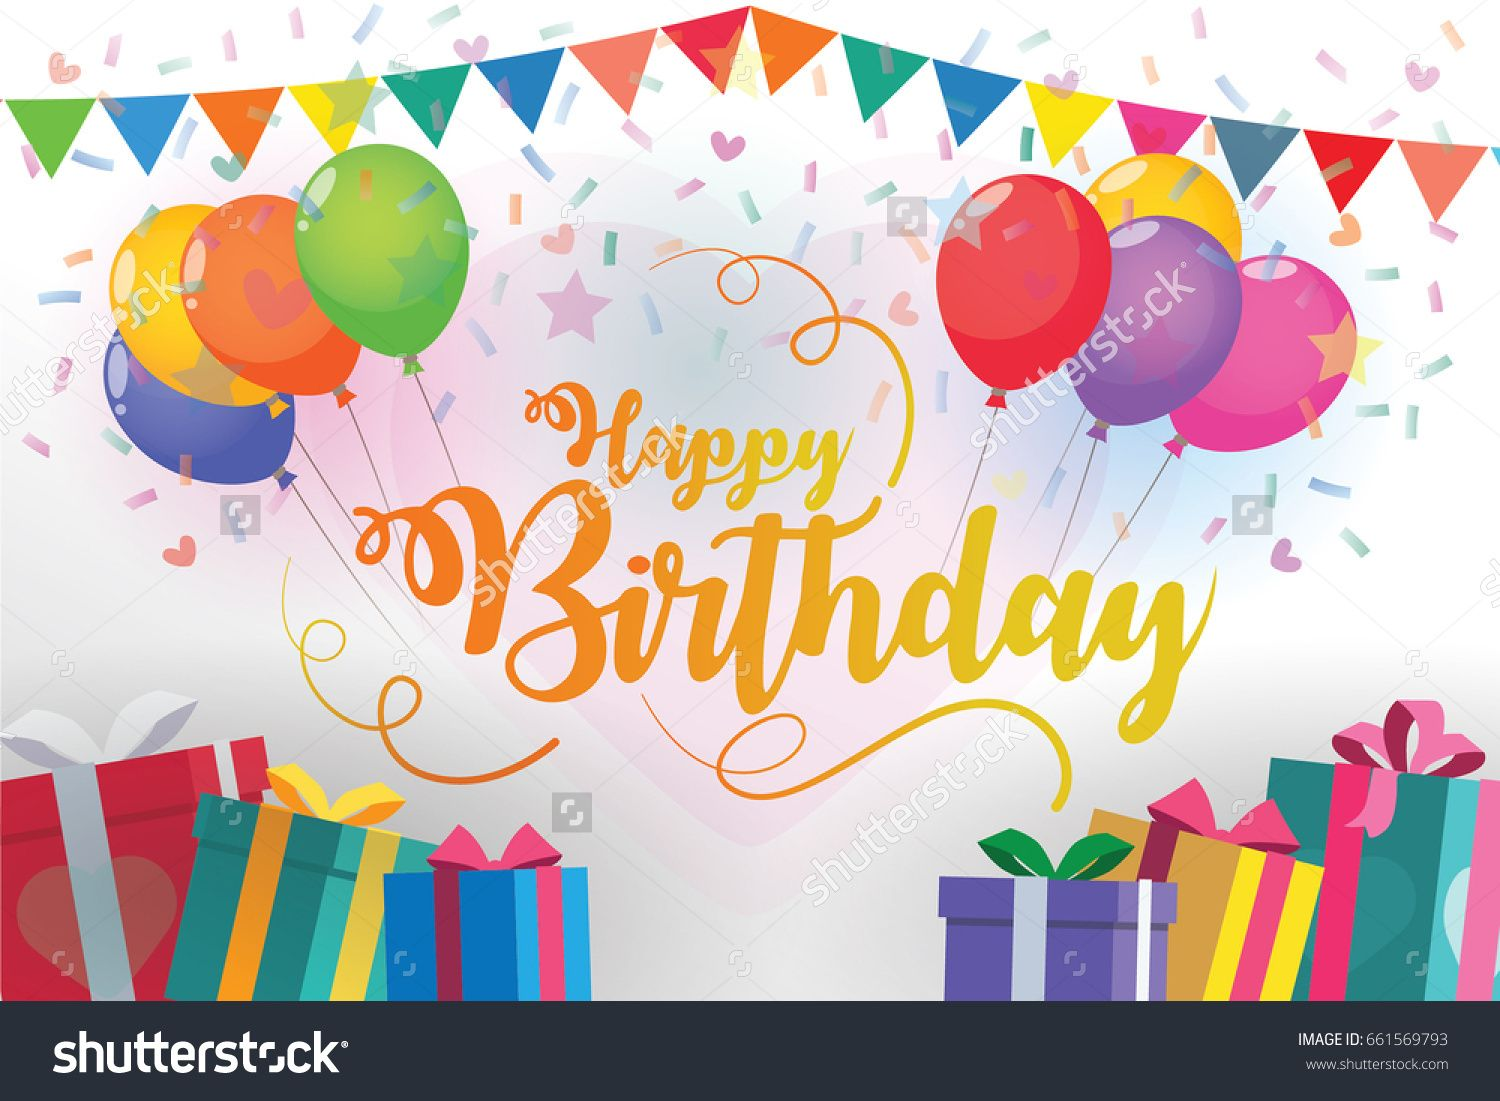 Happy Birthday Design Vector ~ Happy birthday typography with balloons and gifts vector design. for